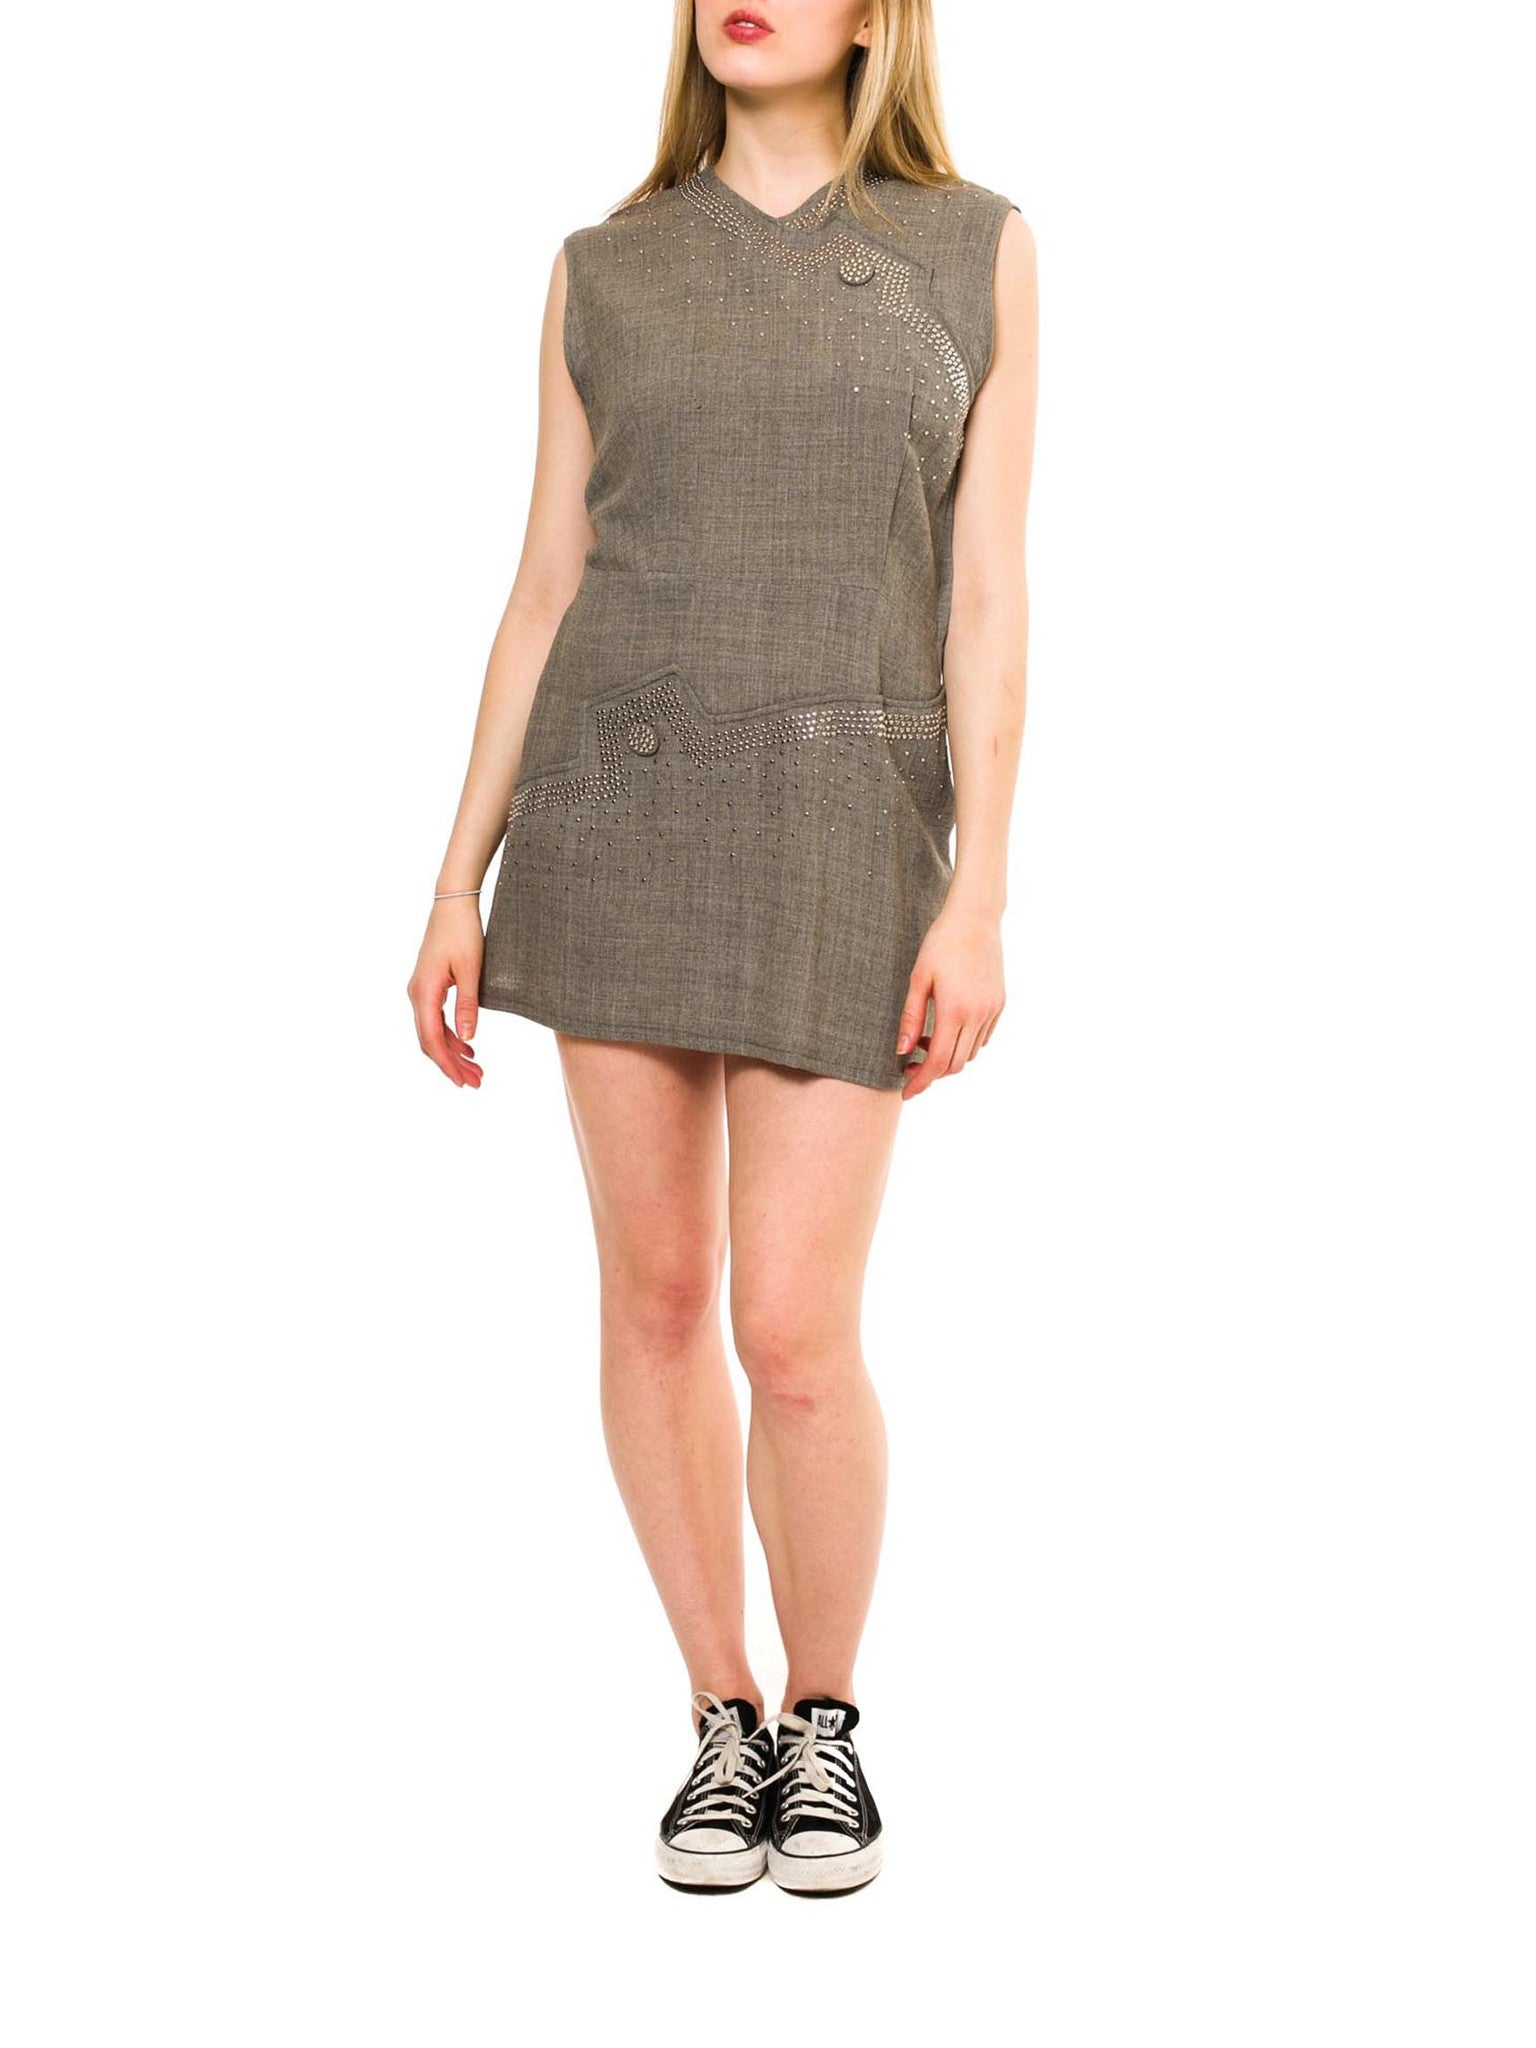 1940S Heather Grey Wool Silver Metal Studded Mini Dress Tunic